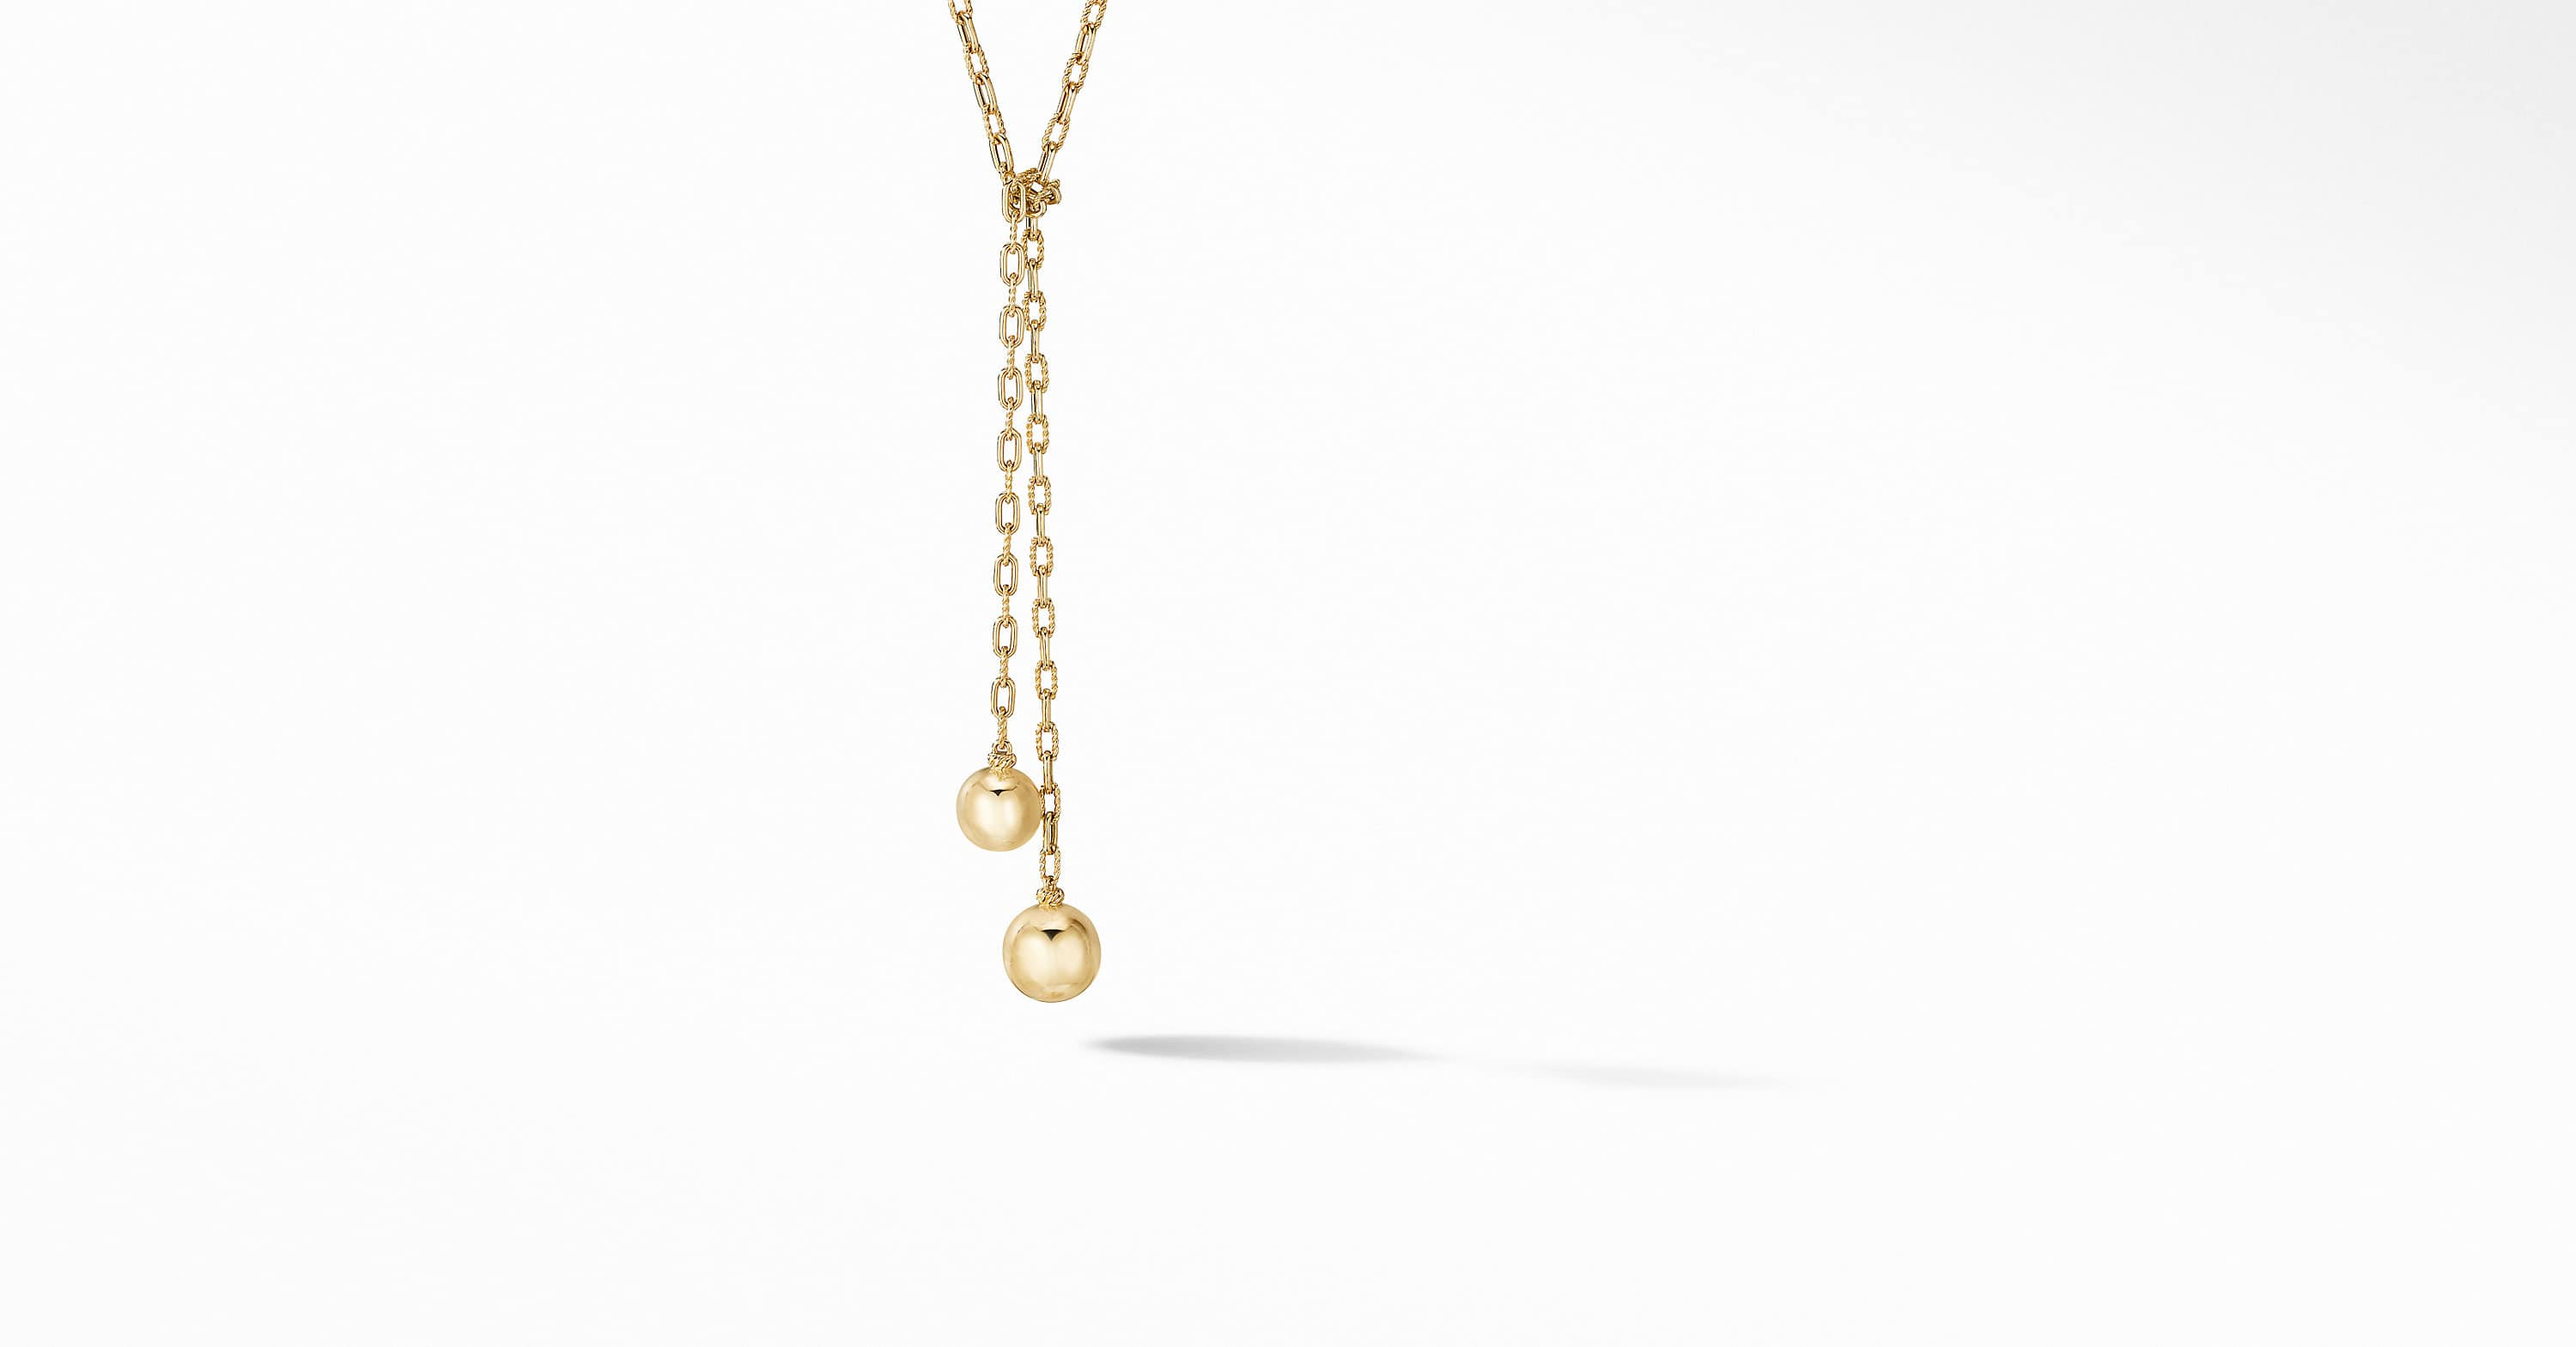 Solari Wrap Necklace in 18K Yellow Gold